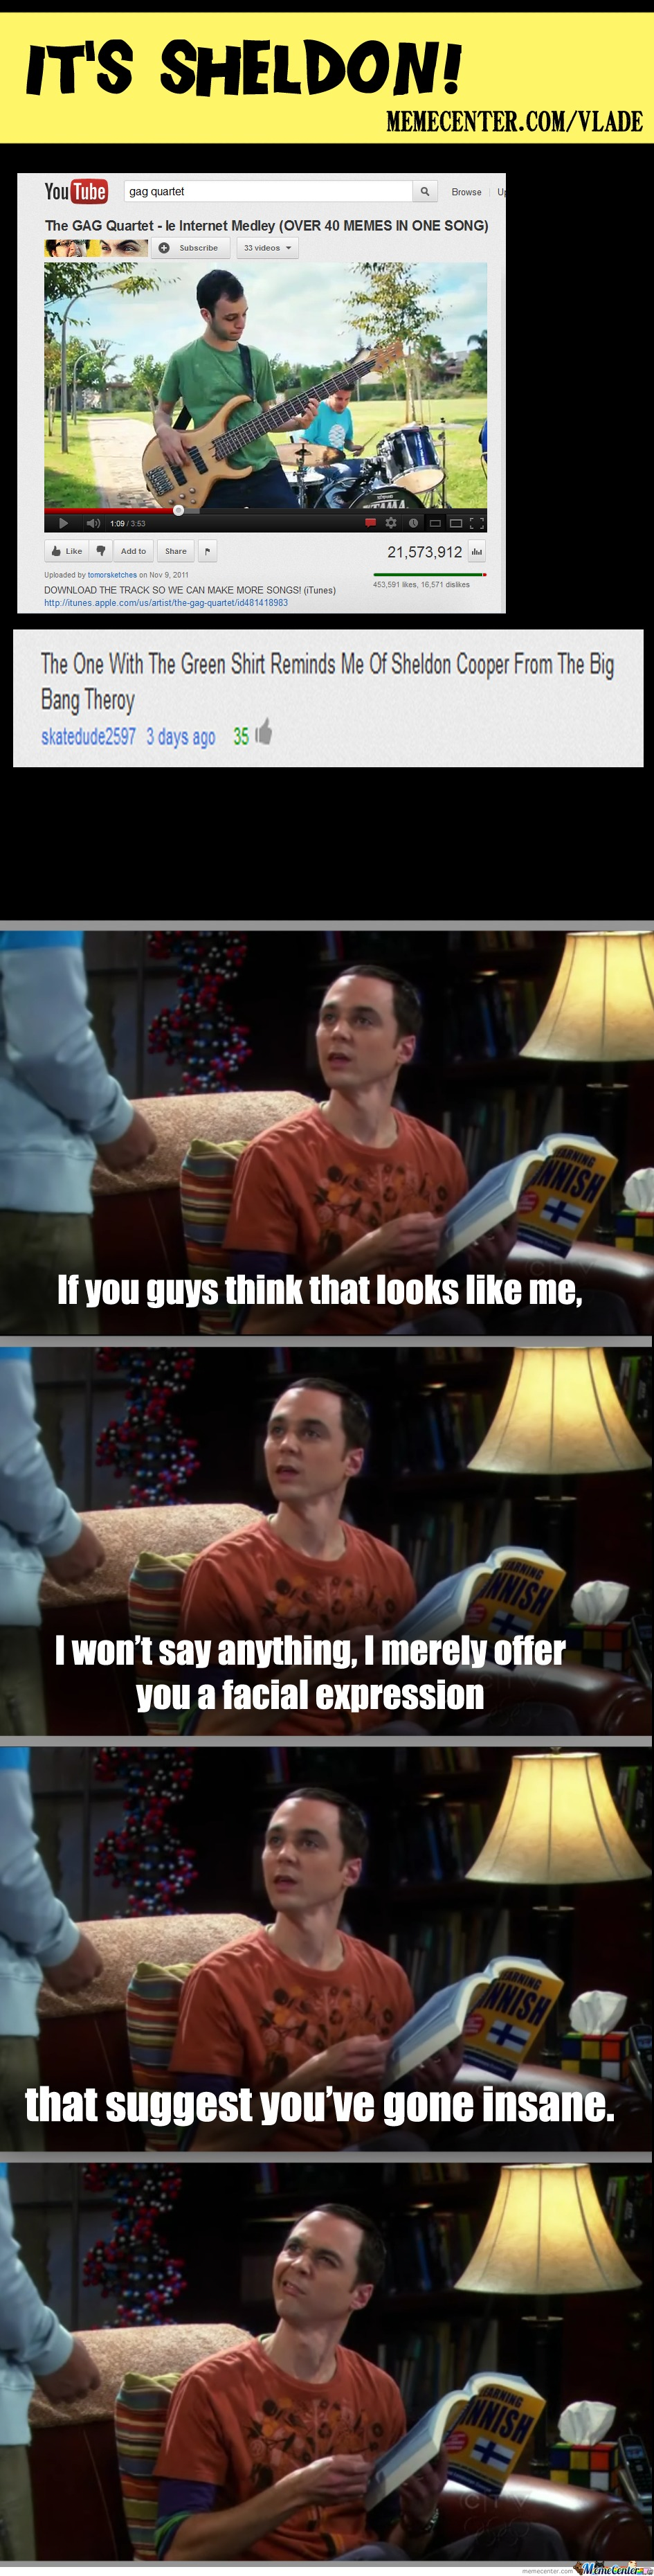 It's Sheldon!